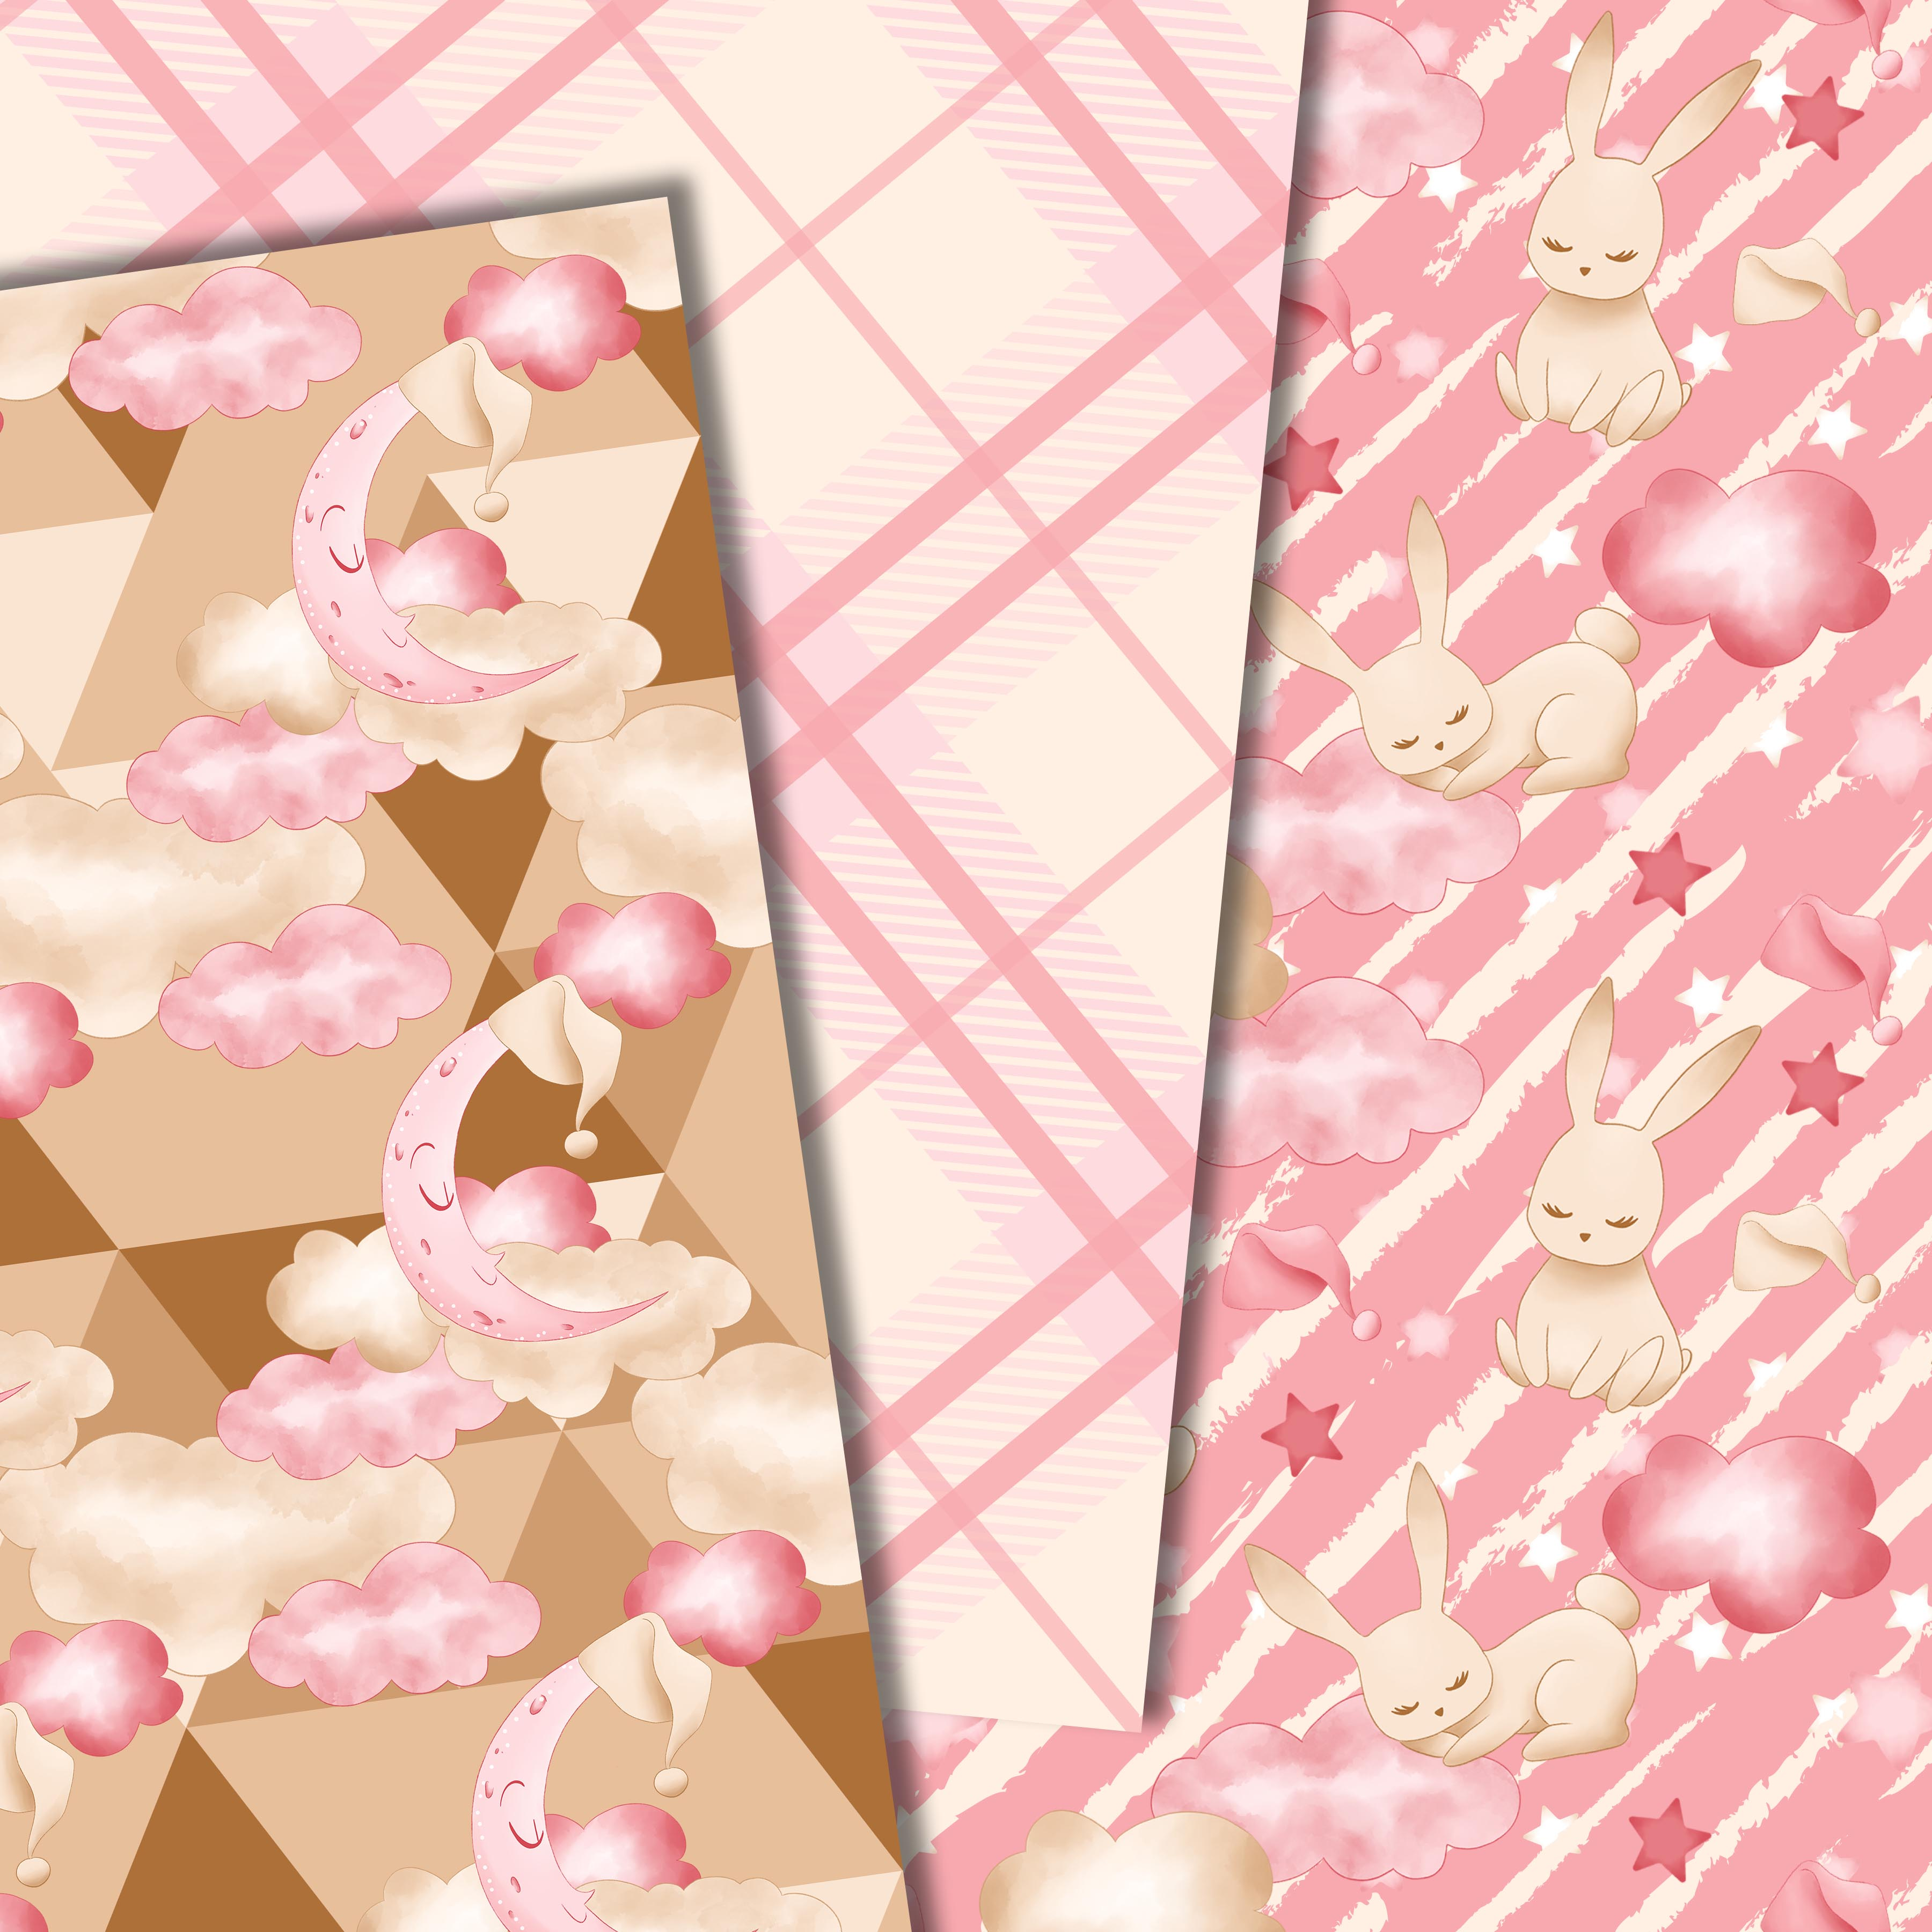 Good night bunny pattern in pink example image 4